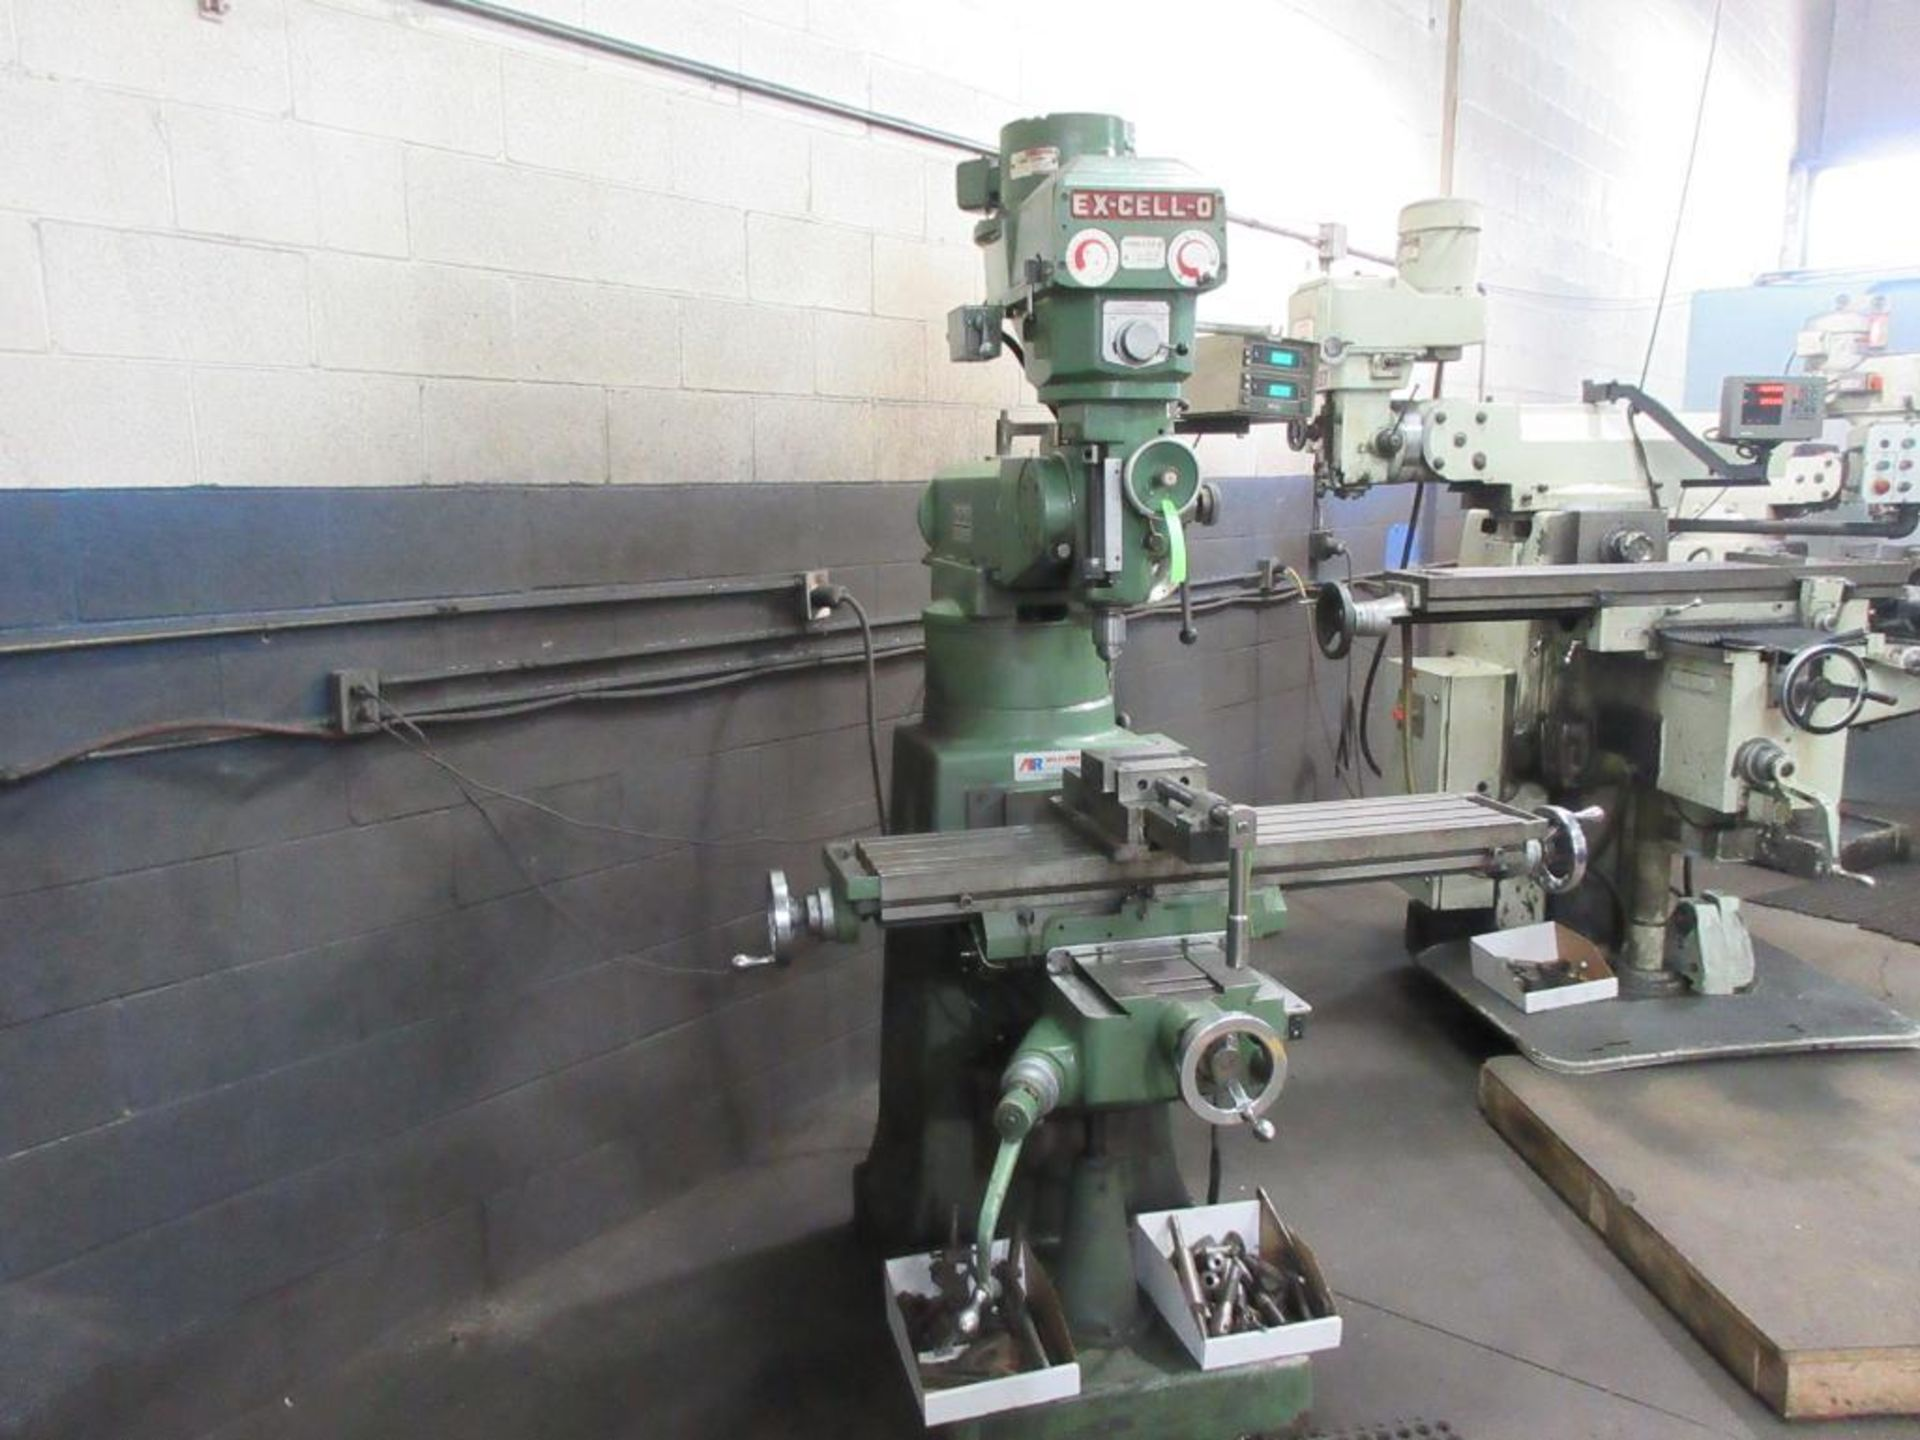 """EXCELLO MILL MODEL 602, 47""""X9"""" TABLE, 85-4000 RPM, MITUTOYO 2 AXIS DRO, COLLET STYLE , 2 BOXES - Image 2 of 6"""